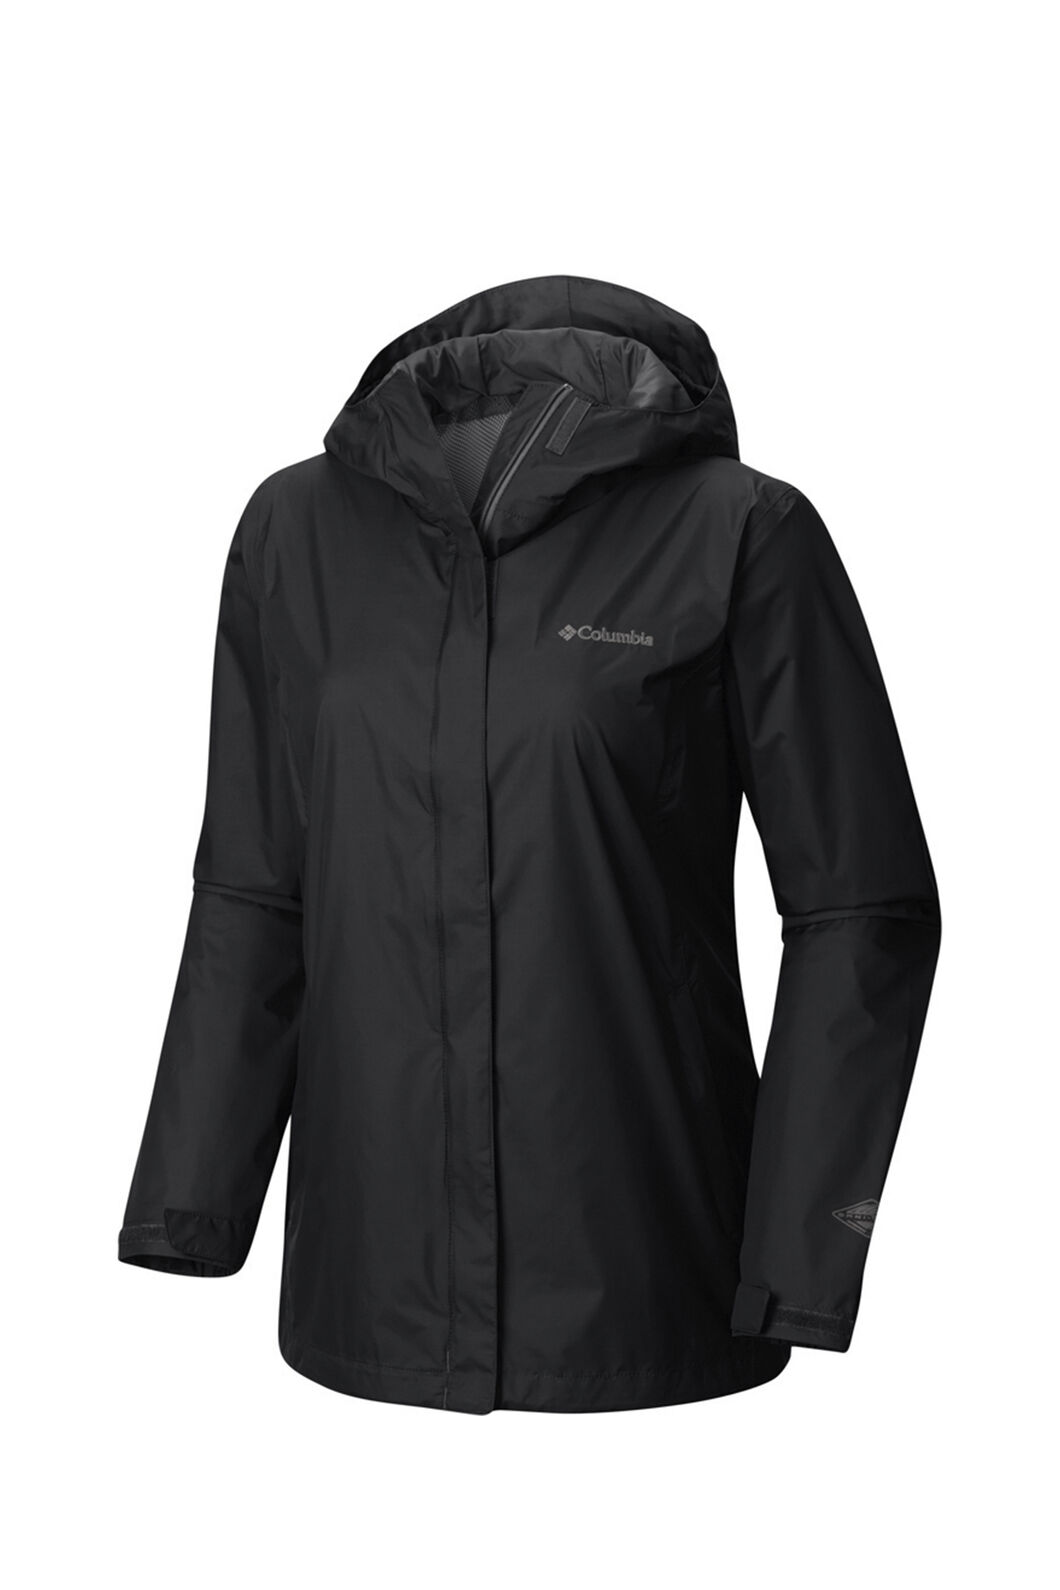 Columbia Women's Arcadia II Jacket, Black, hi-res